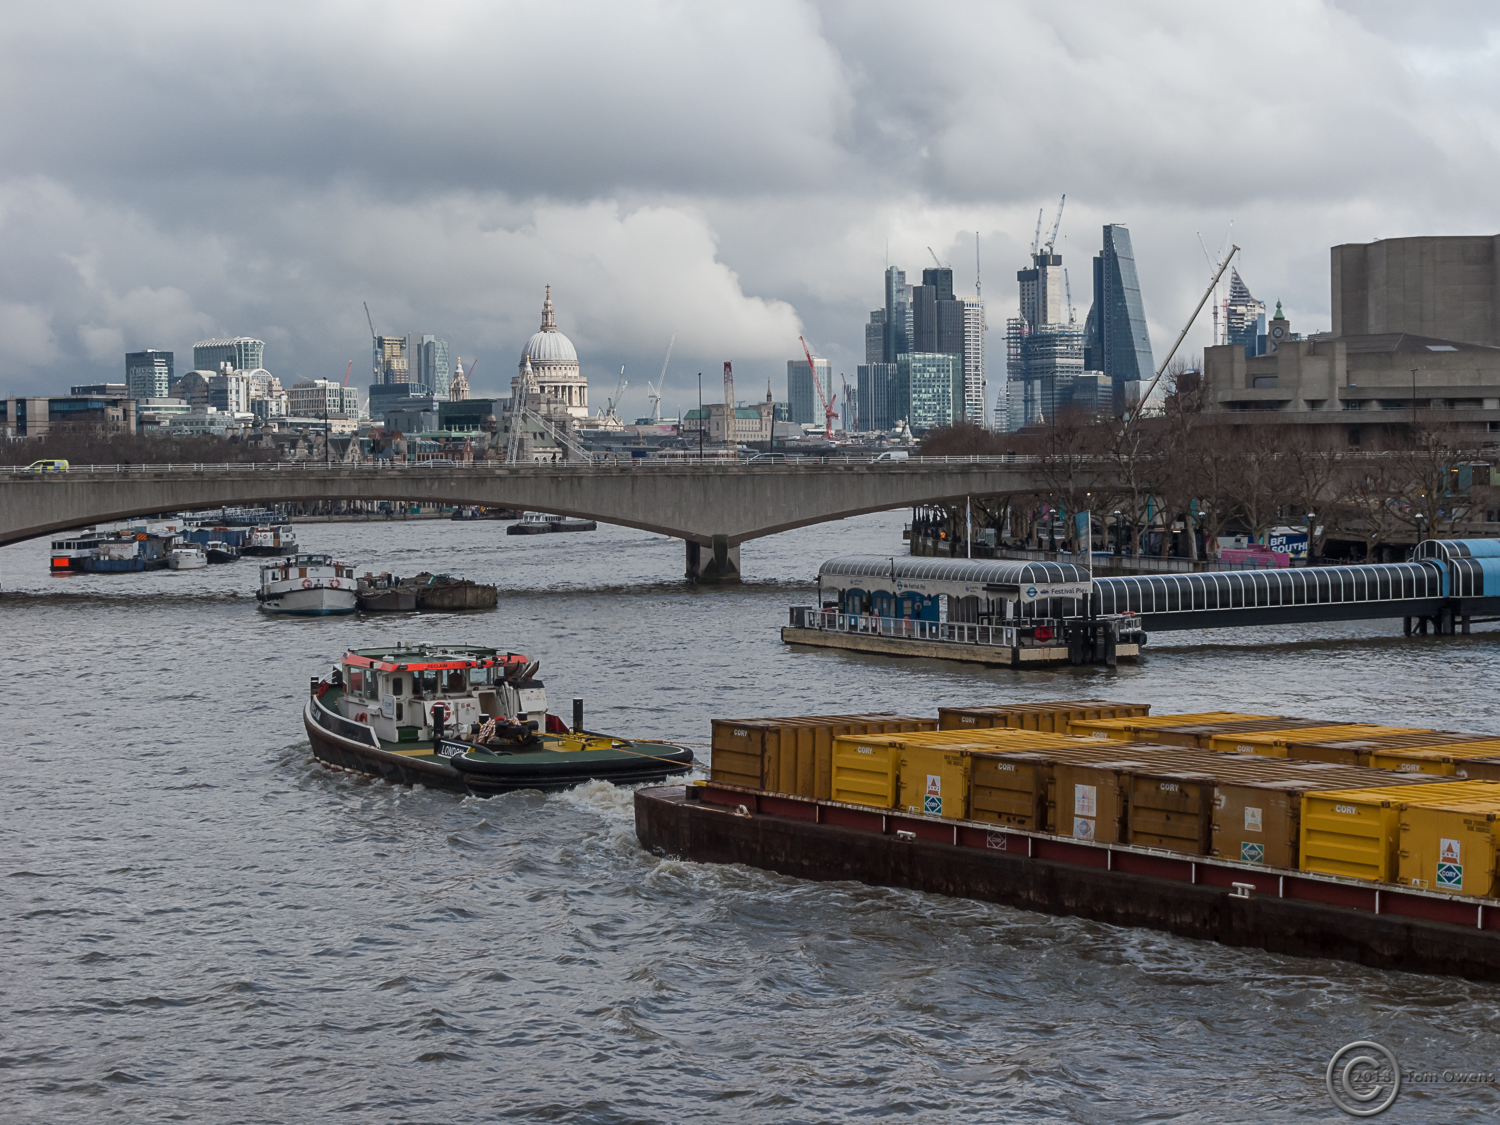 Waste barges being towed down the Thames